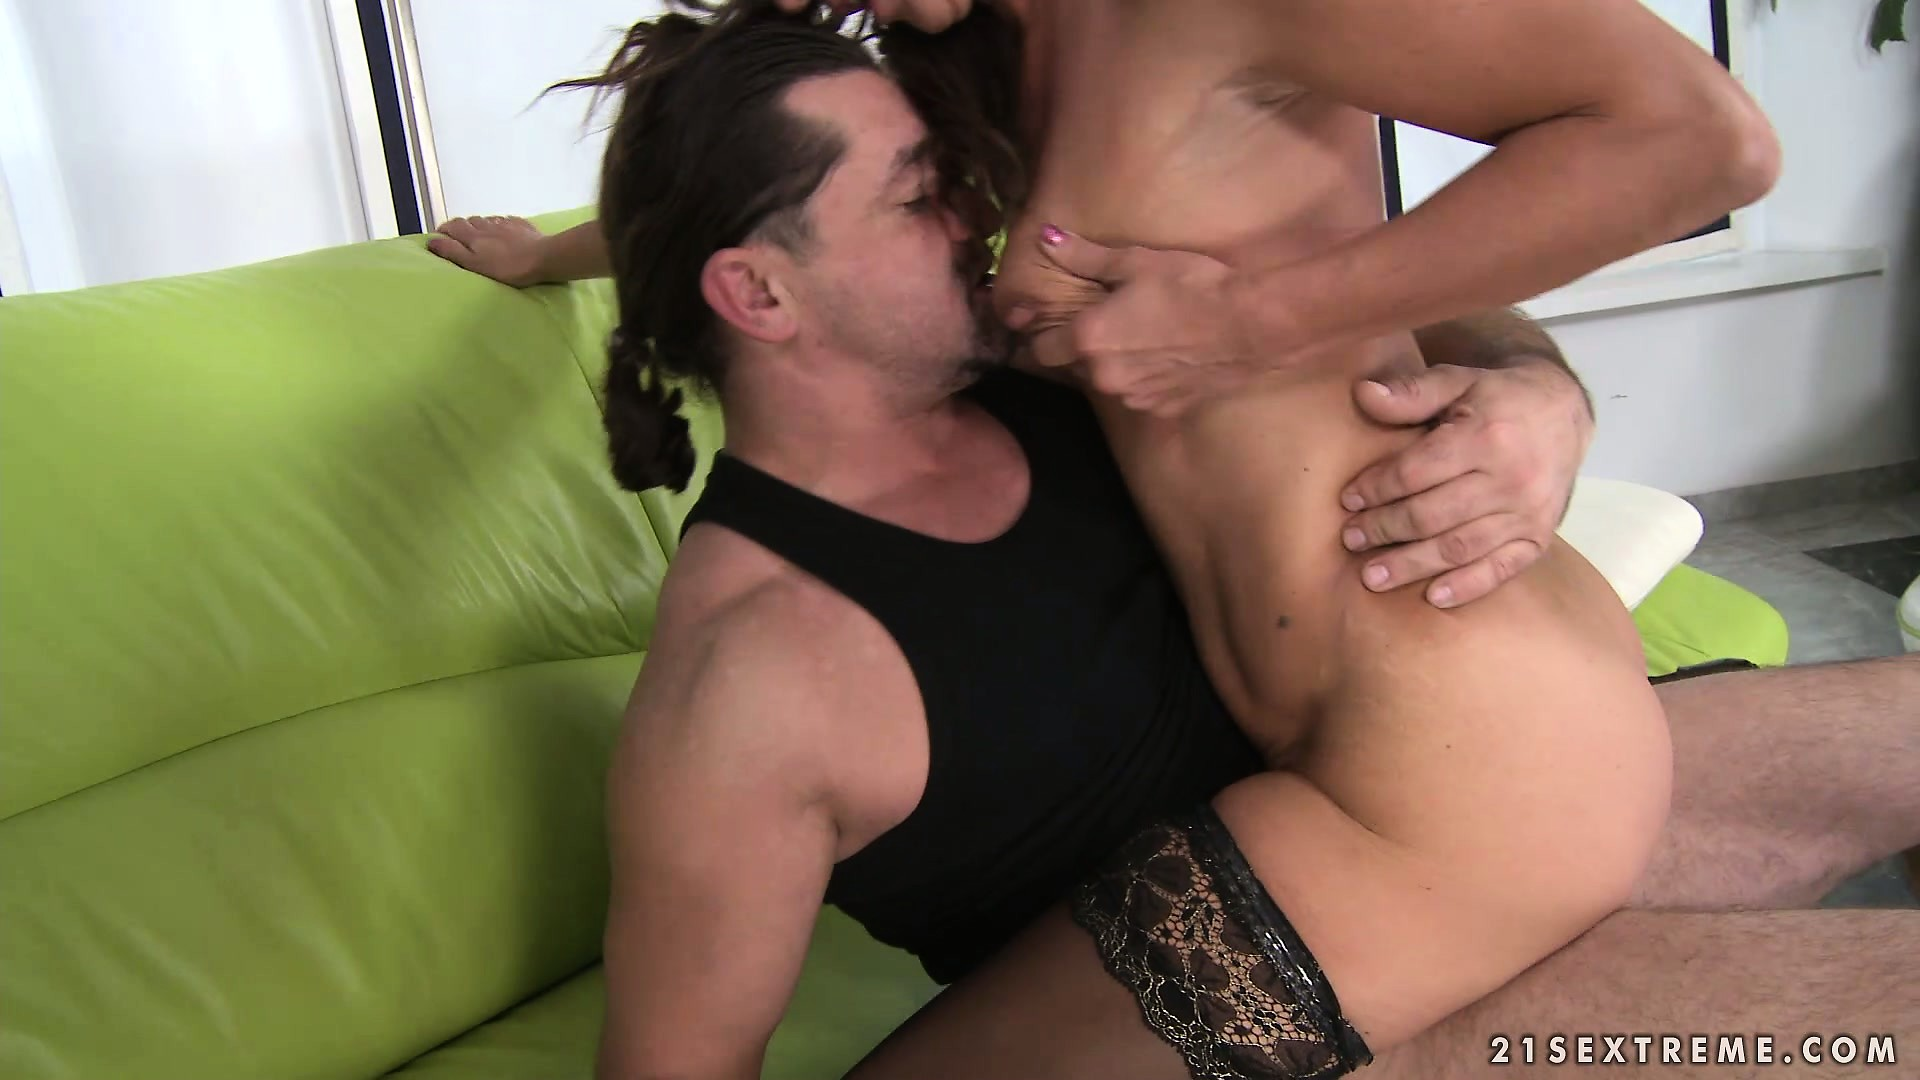 Porn Tube of Sexy Brunette Milf With Tiny Tits Seizes The Chance To Fuck Her Daughter's Boyfriend